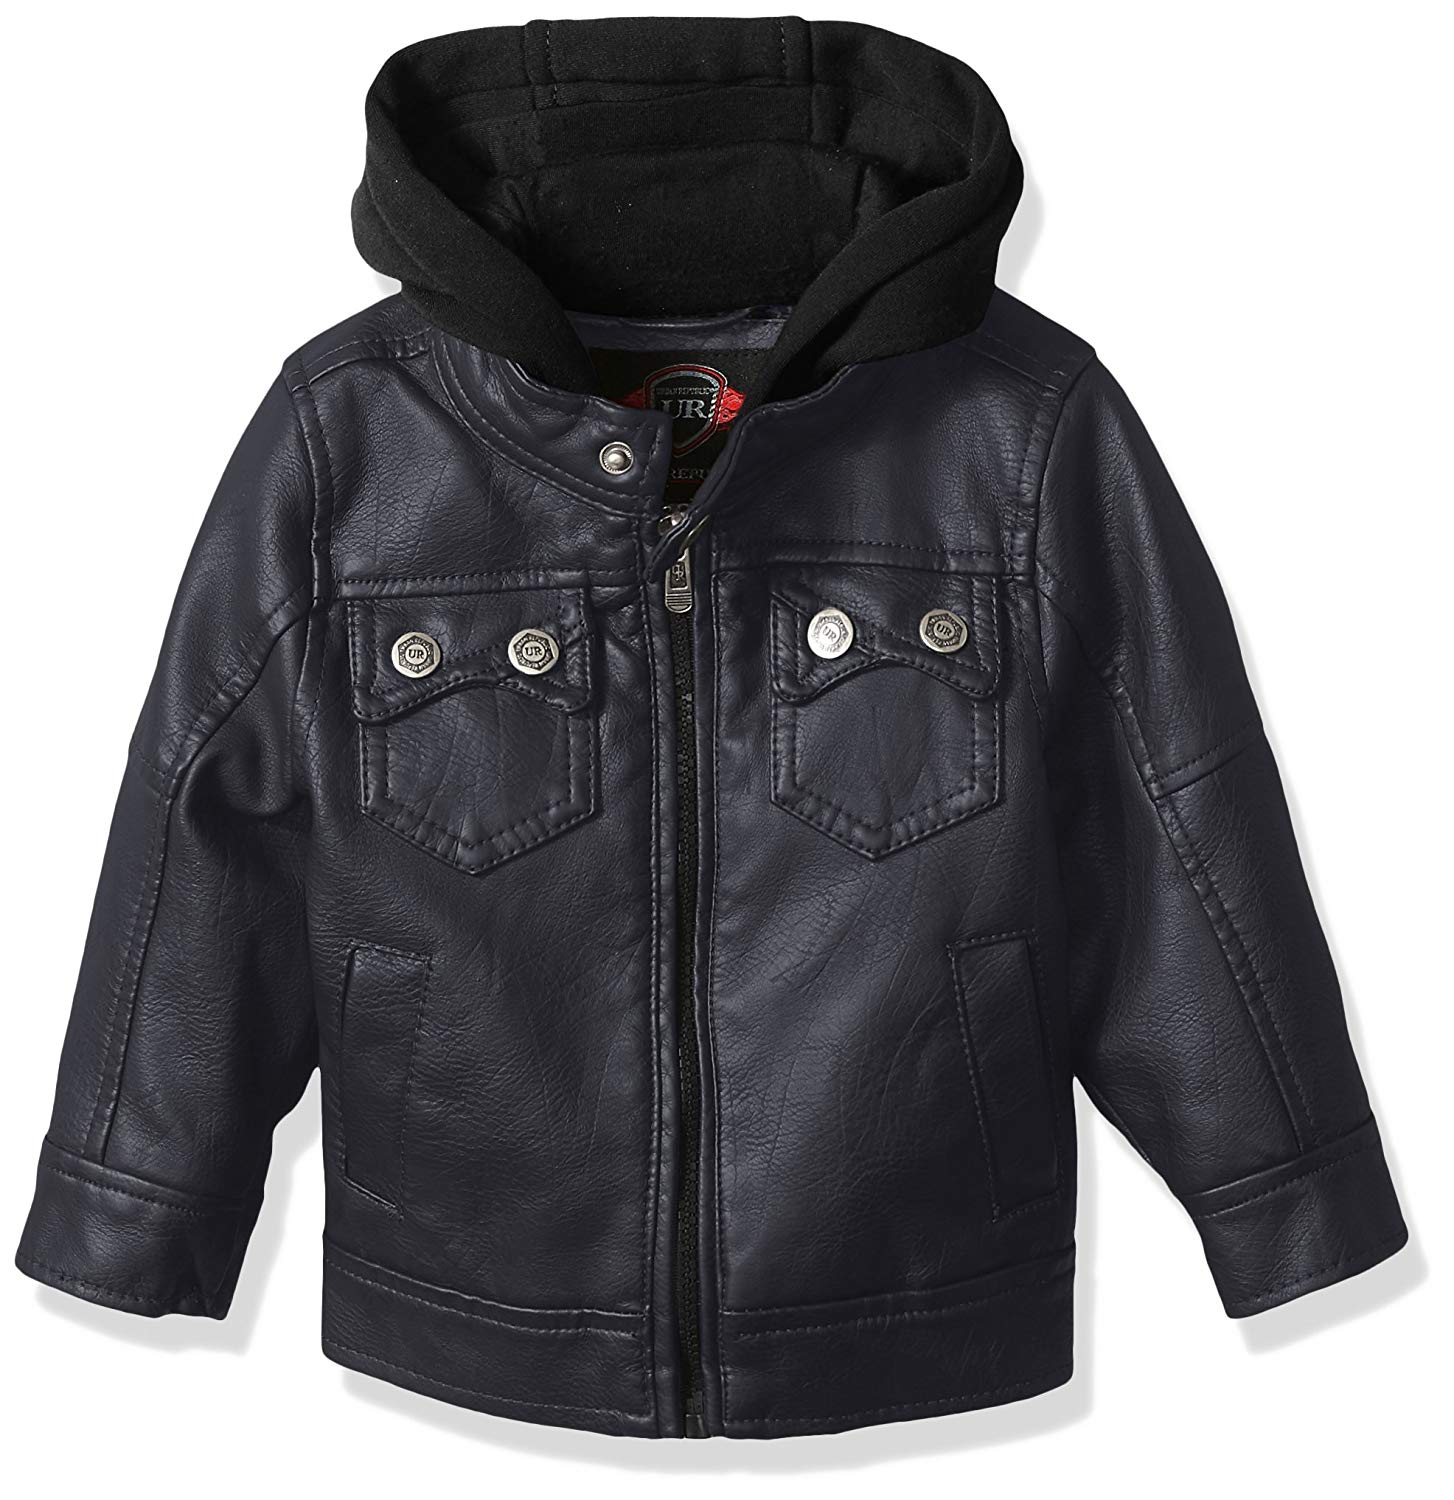 151c4e8ac5fc Cheap Baby Leather Jacket For Boys